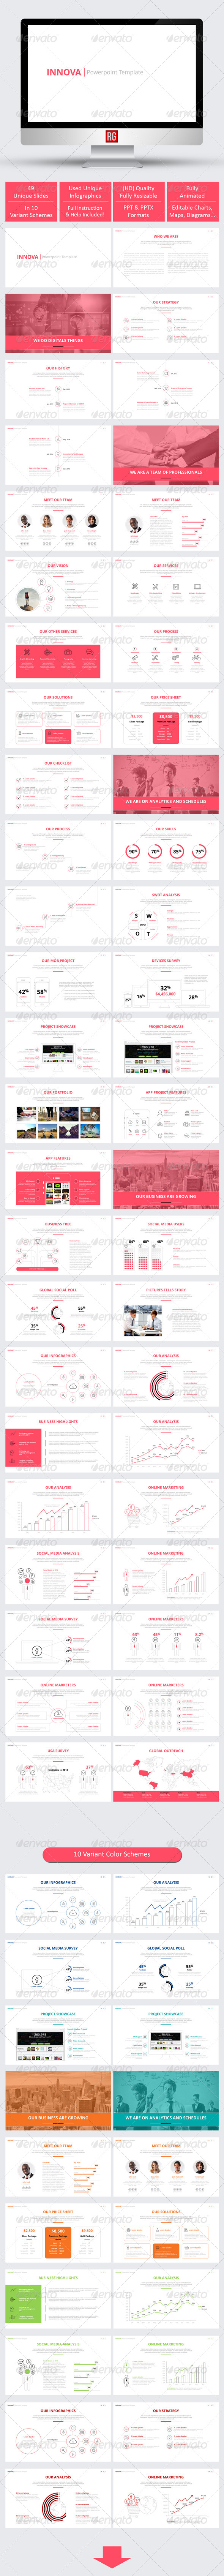 GraphicRiver Innova Powerpoint Template 8105095